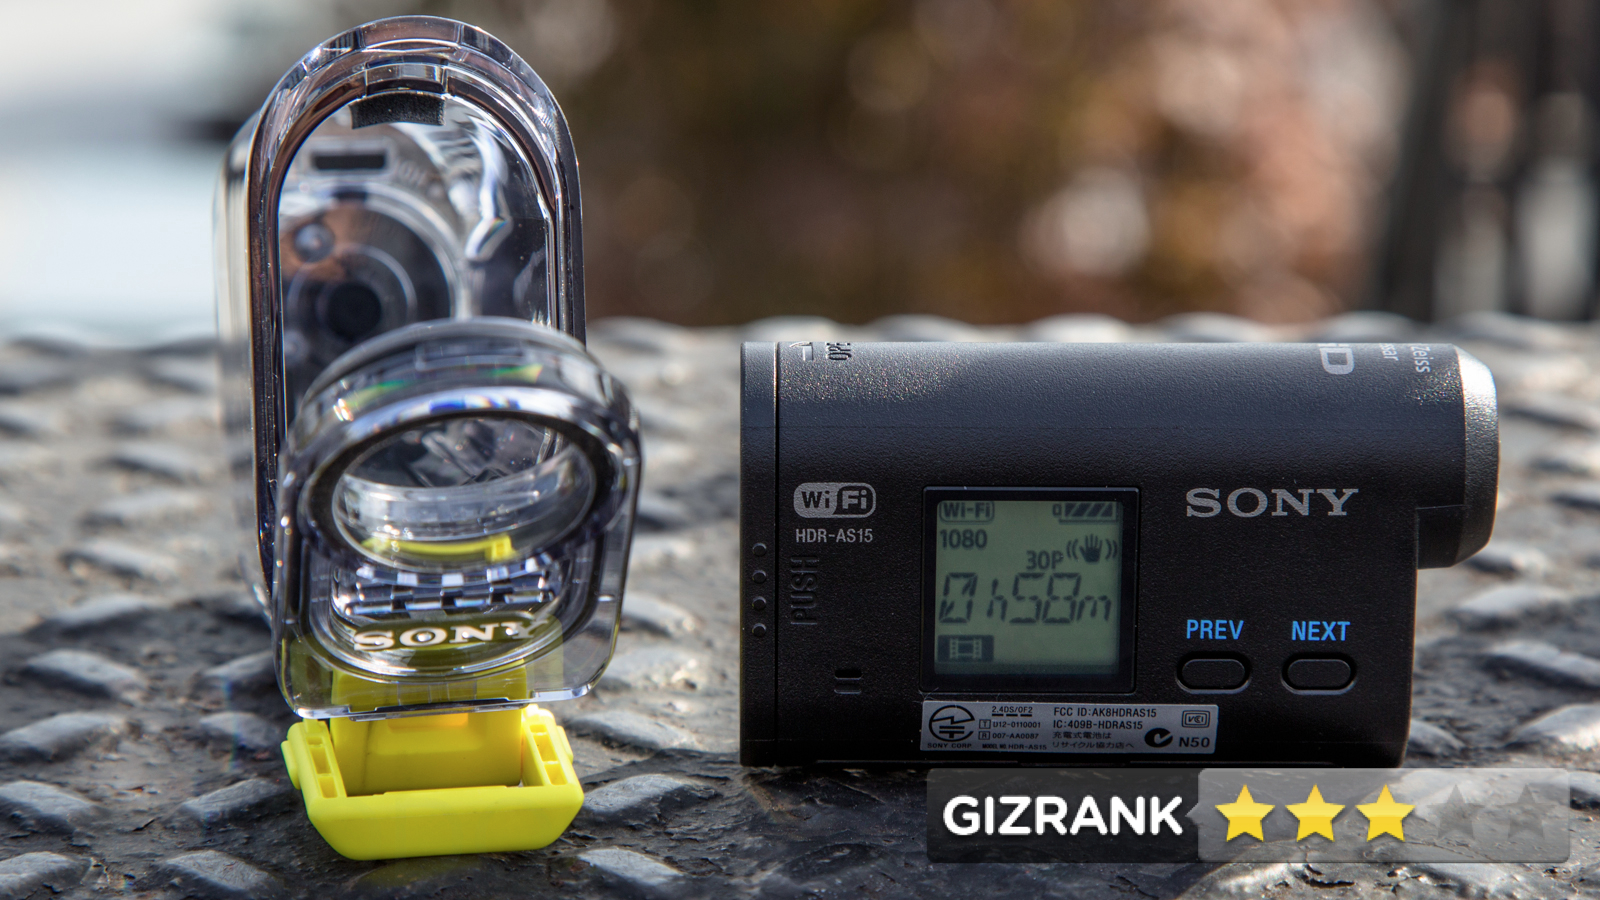 Document Your Adventures in 4K With Sony Action Cam